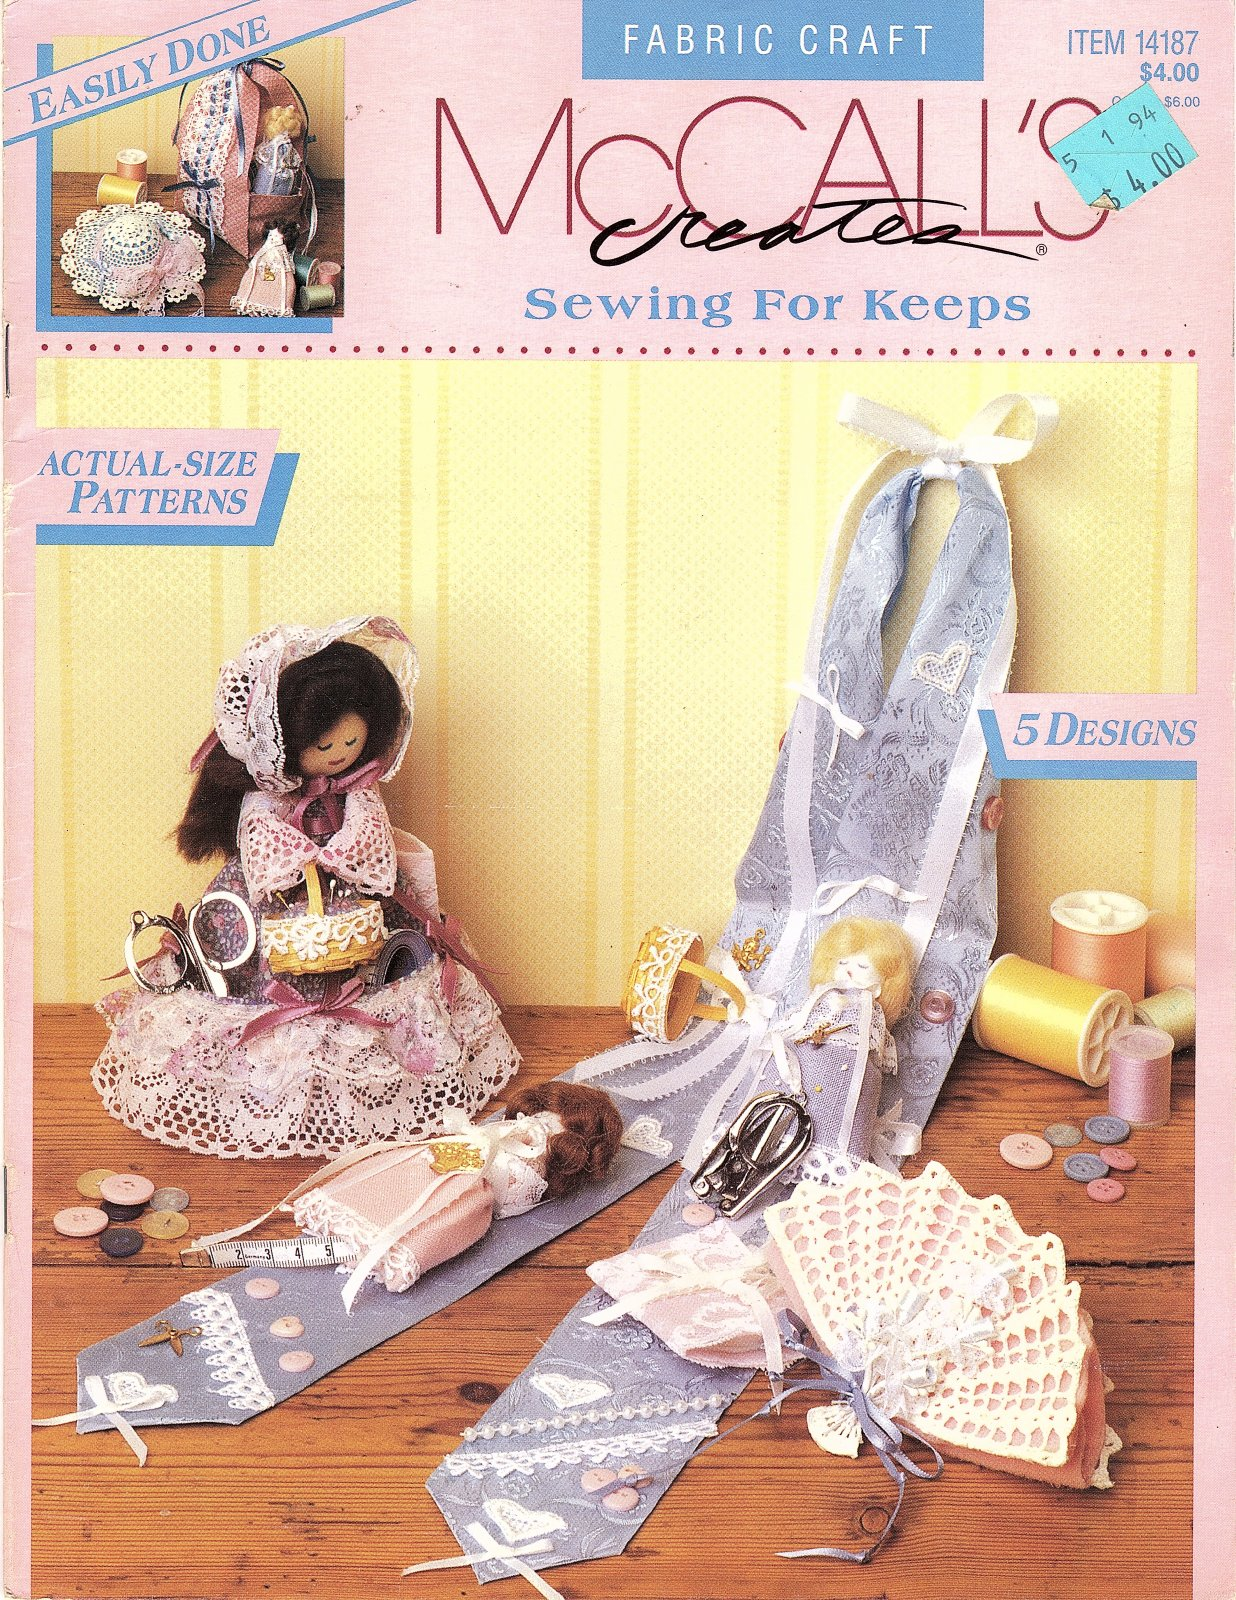 Sewing for Keeps  by McCall's Creates - 5 Designs Actual Size Patterns